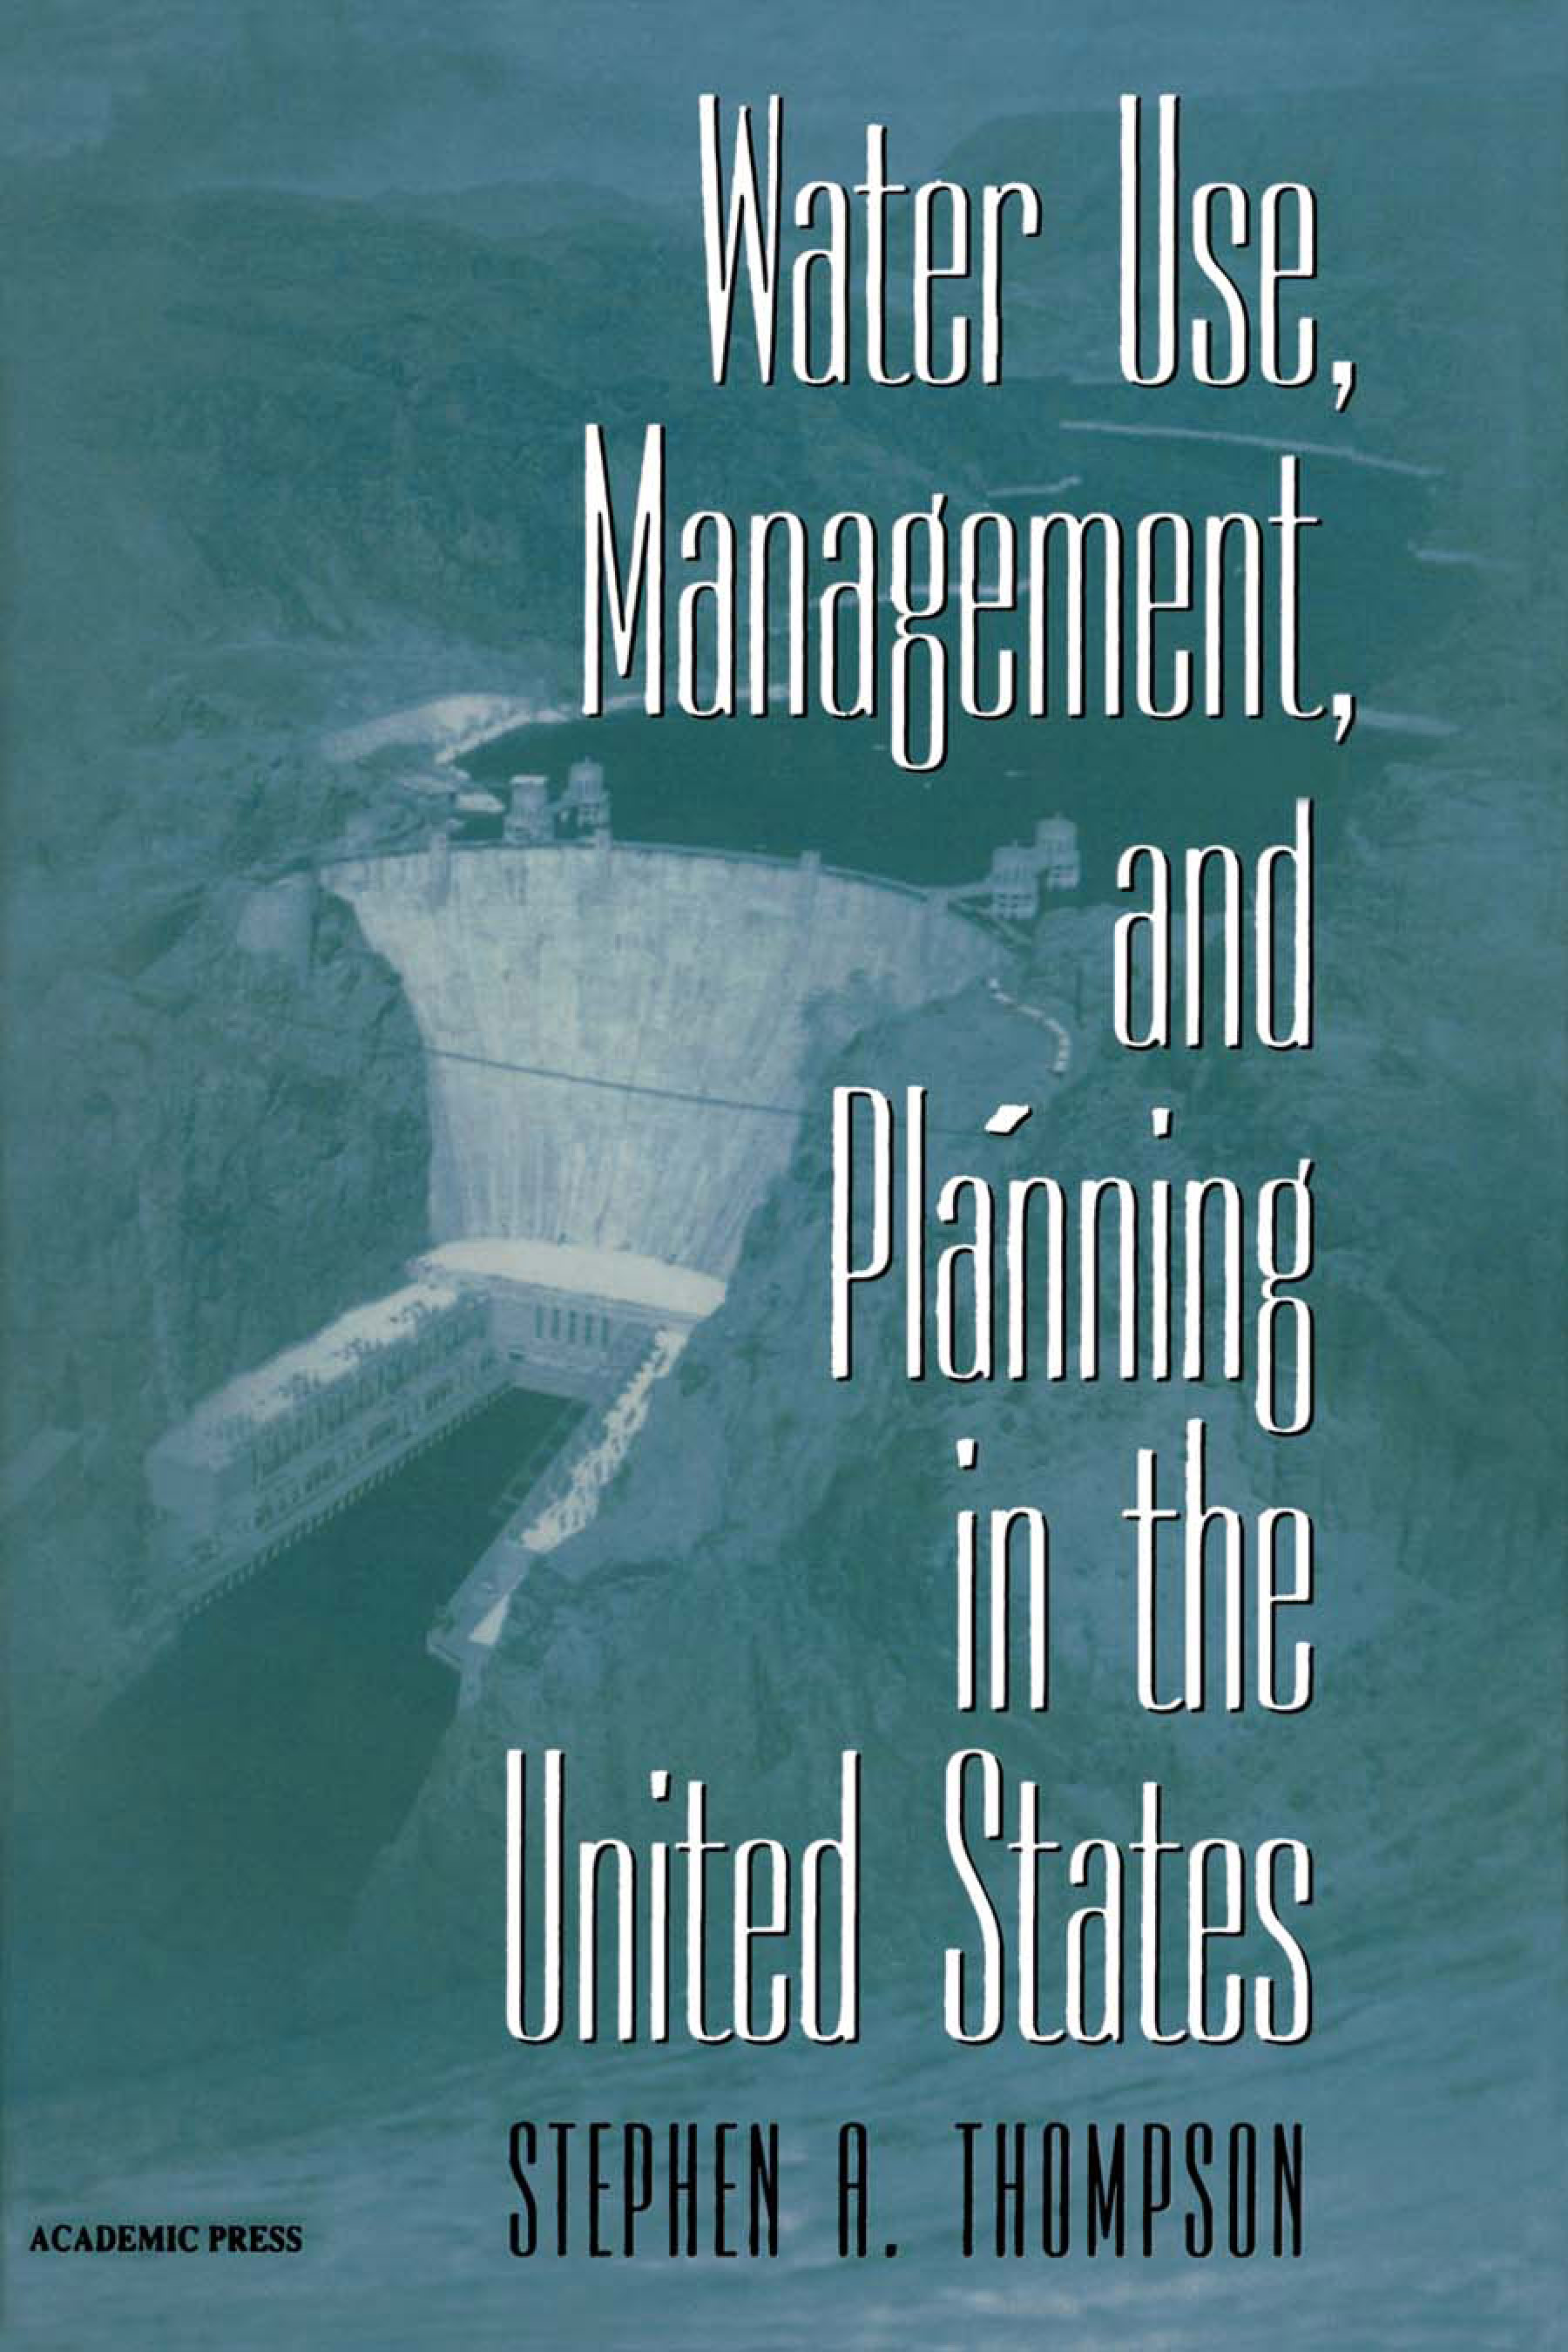 Download Ebook Water Use, Management, and Planning in the United States by Stephen A. Thompson Pdf